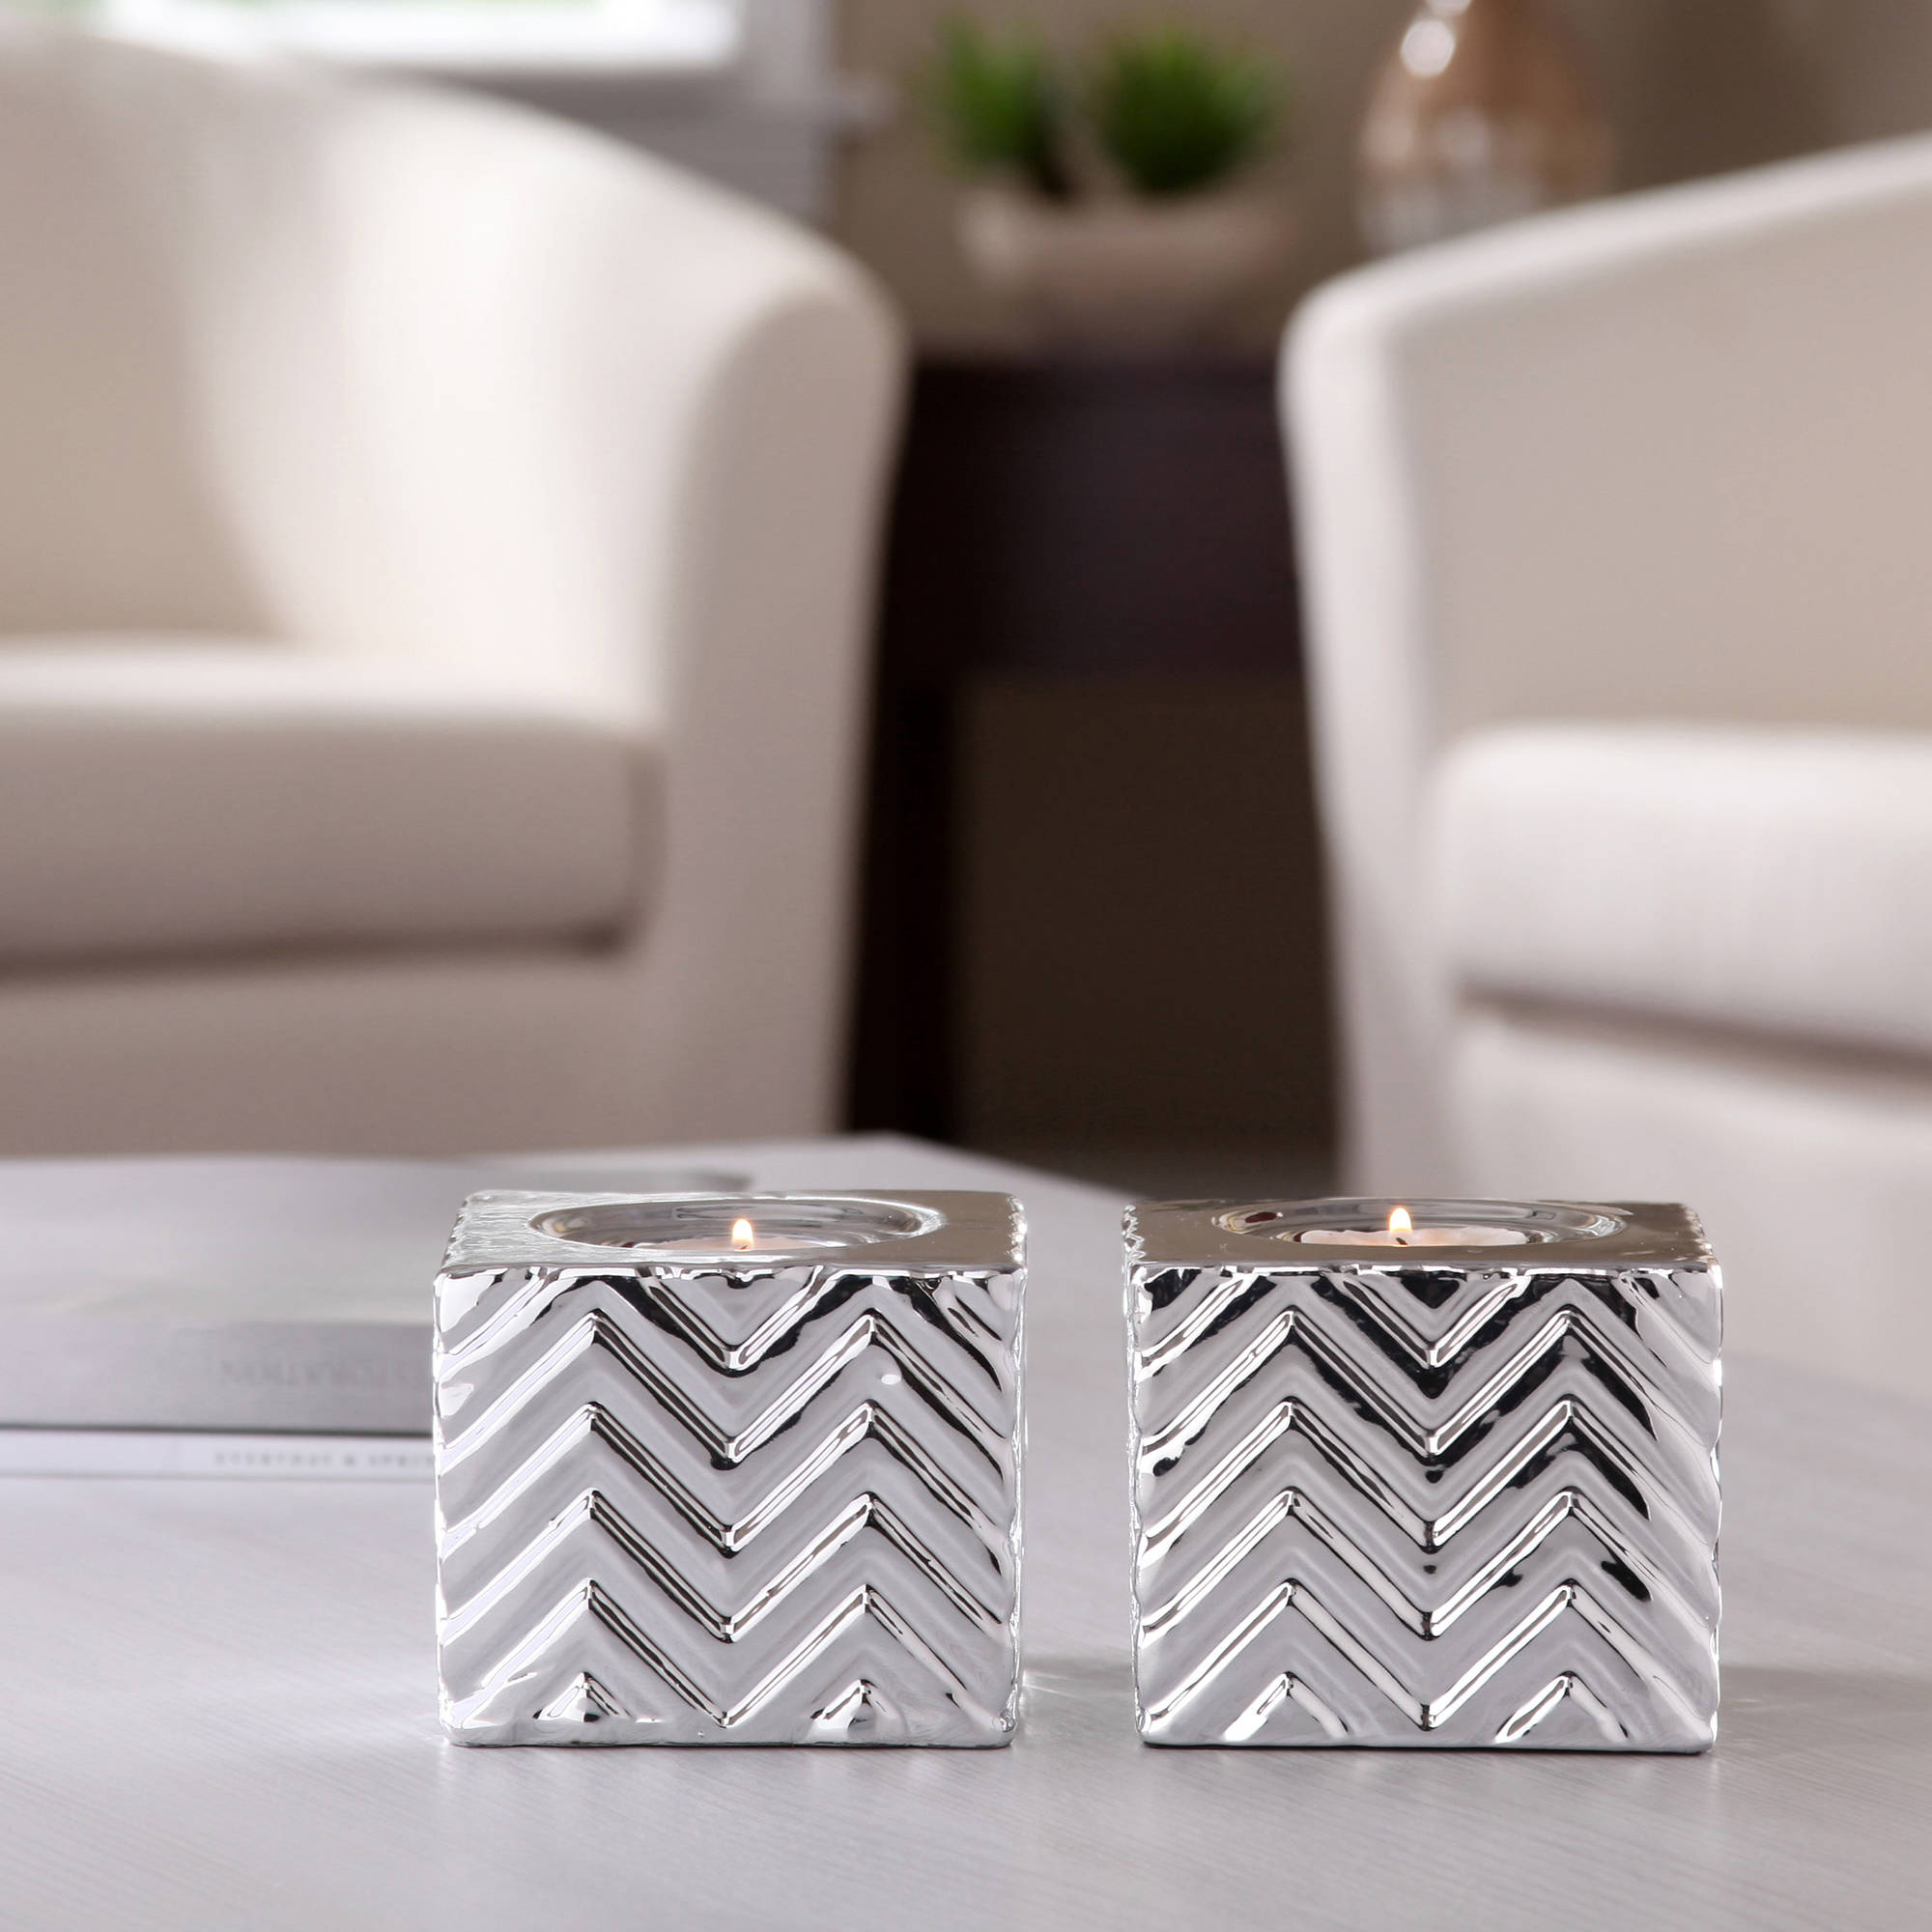 Better Homes and Gardens Ceramic Chevron Tealight Candle Holders, Set of 2